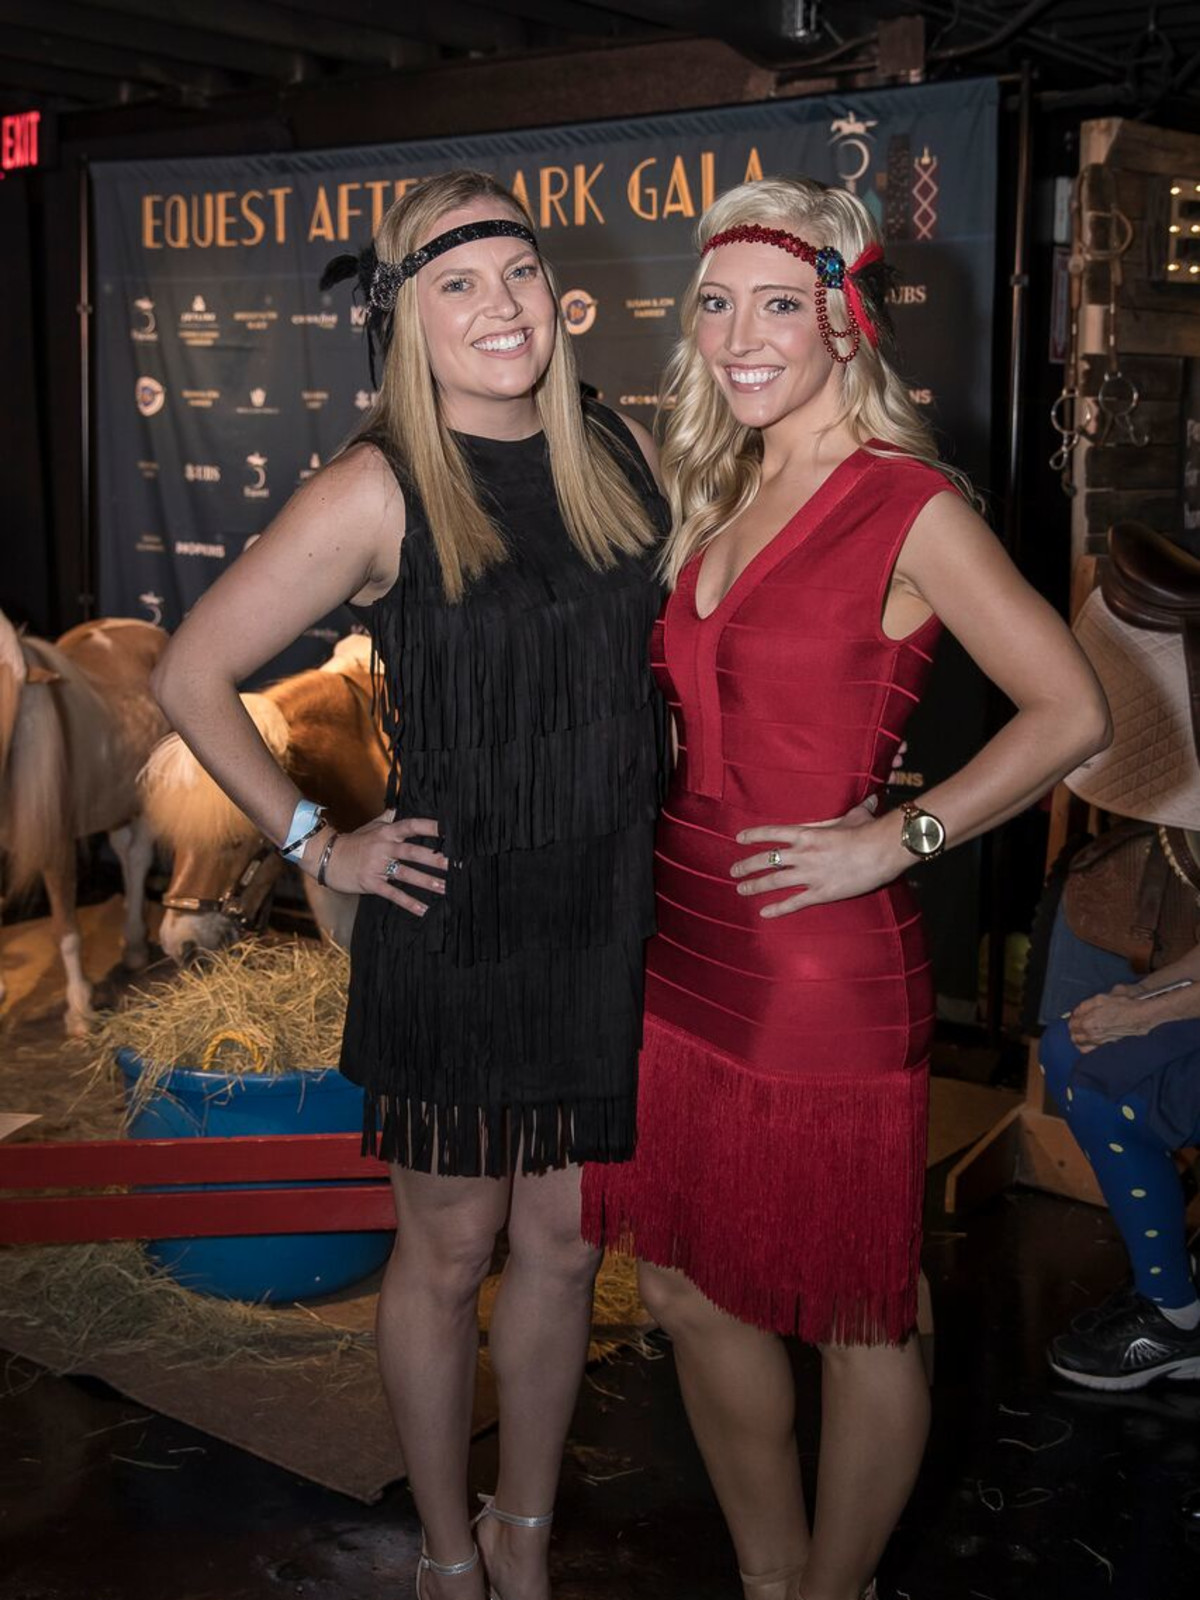 Equest After Dark Gala 2018, Meredith Matthews, Laura Lee Lacy